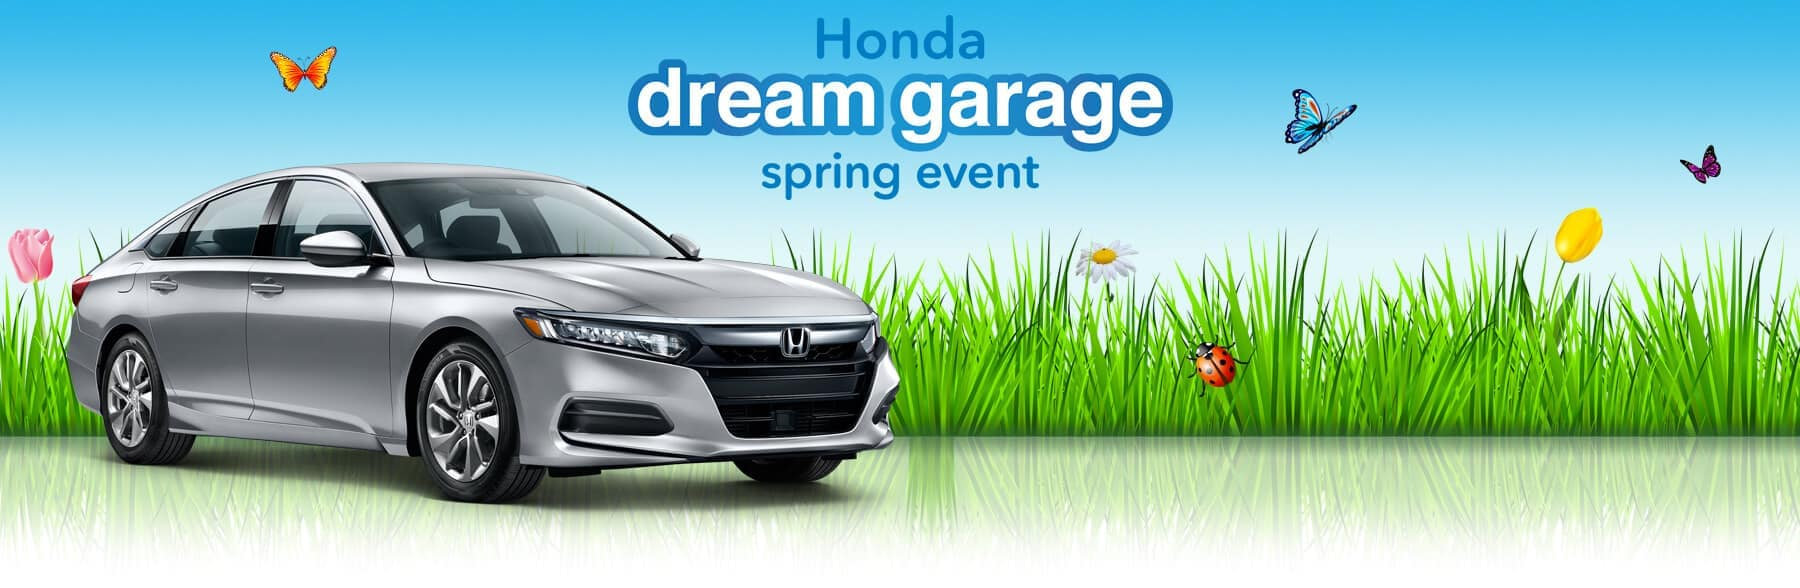 Honda Dream Garage Spring Event 2018 Honda Accord